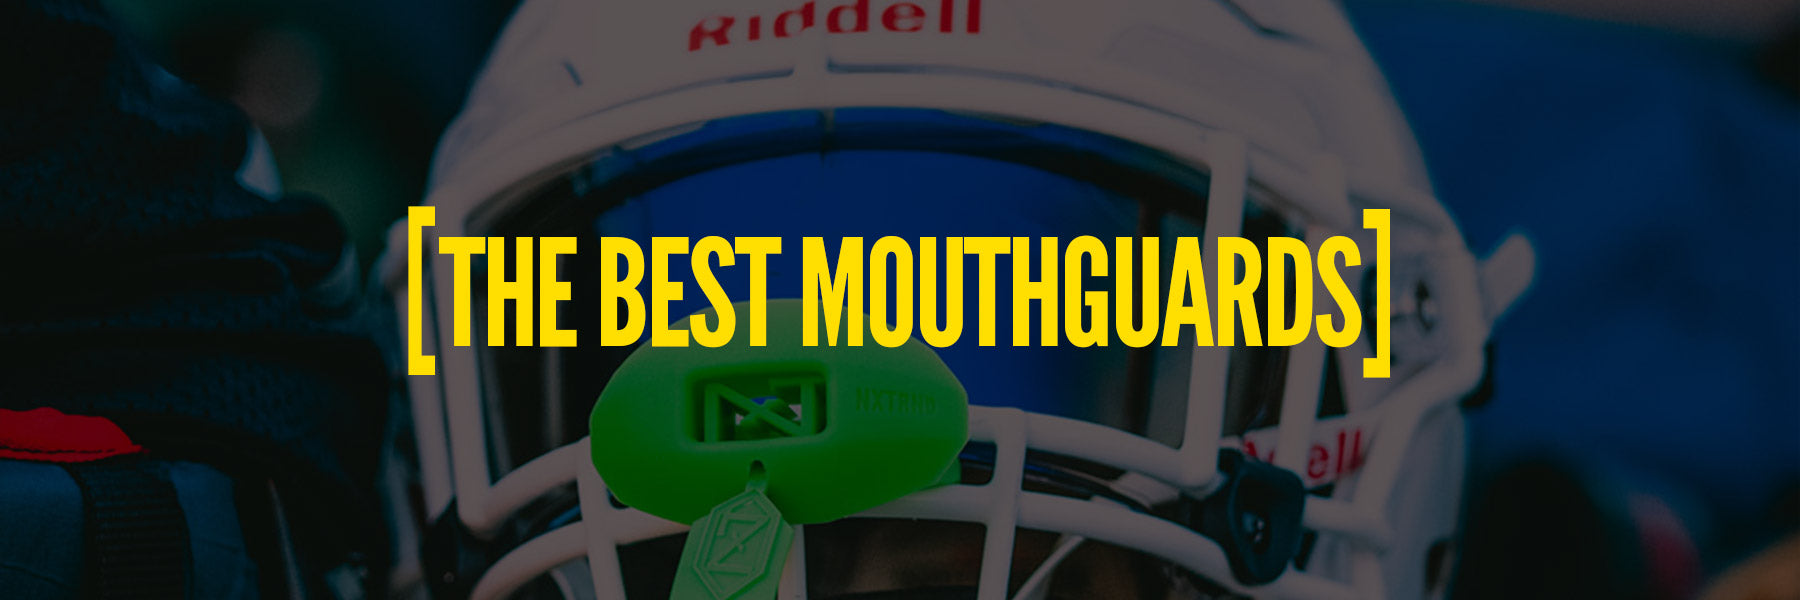 The Best Mouthguards